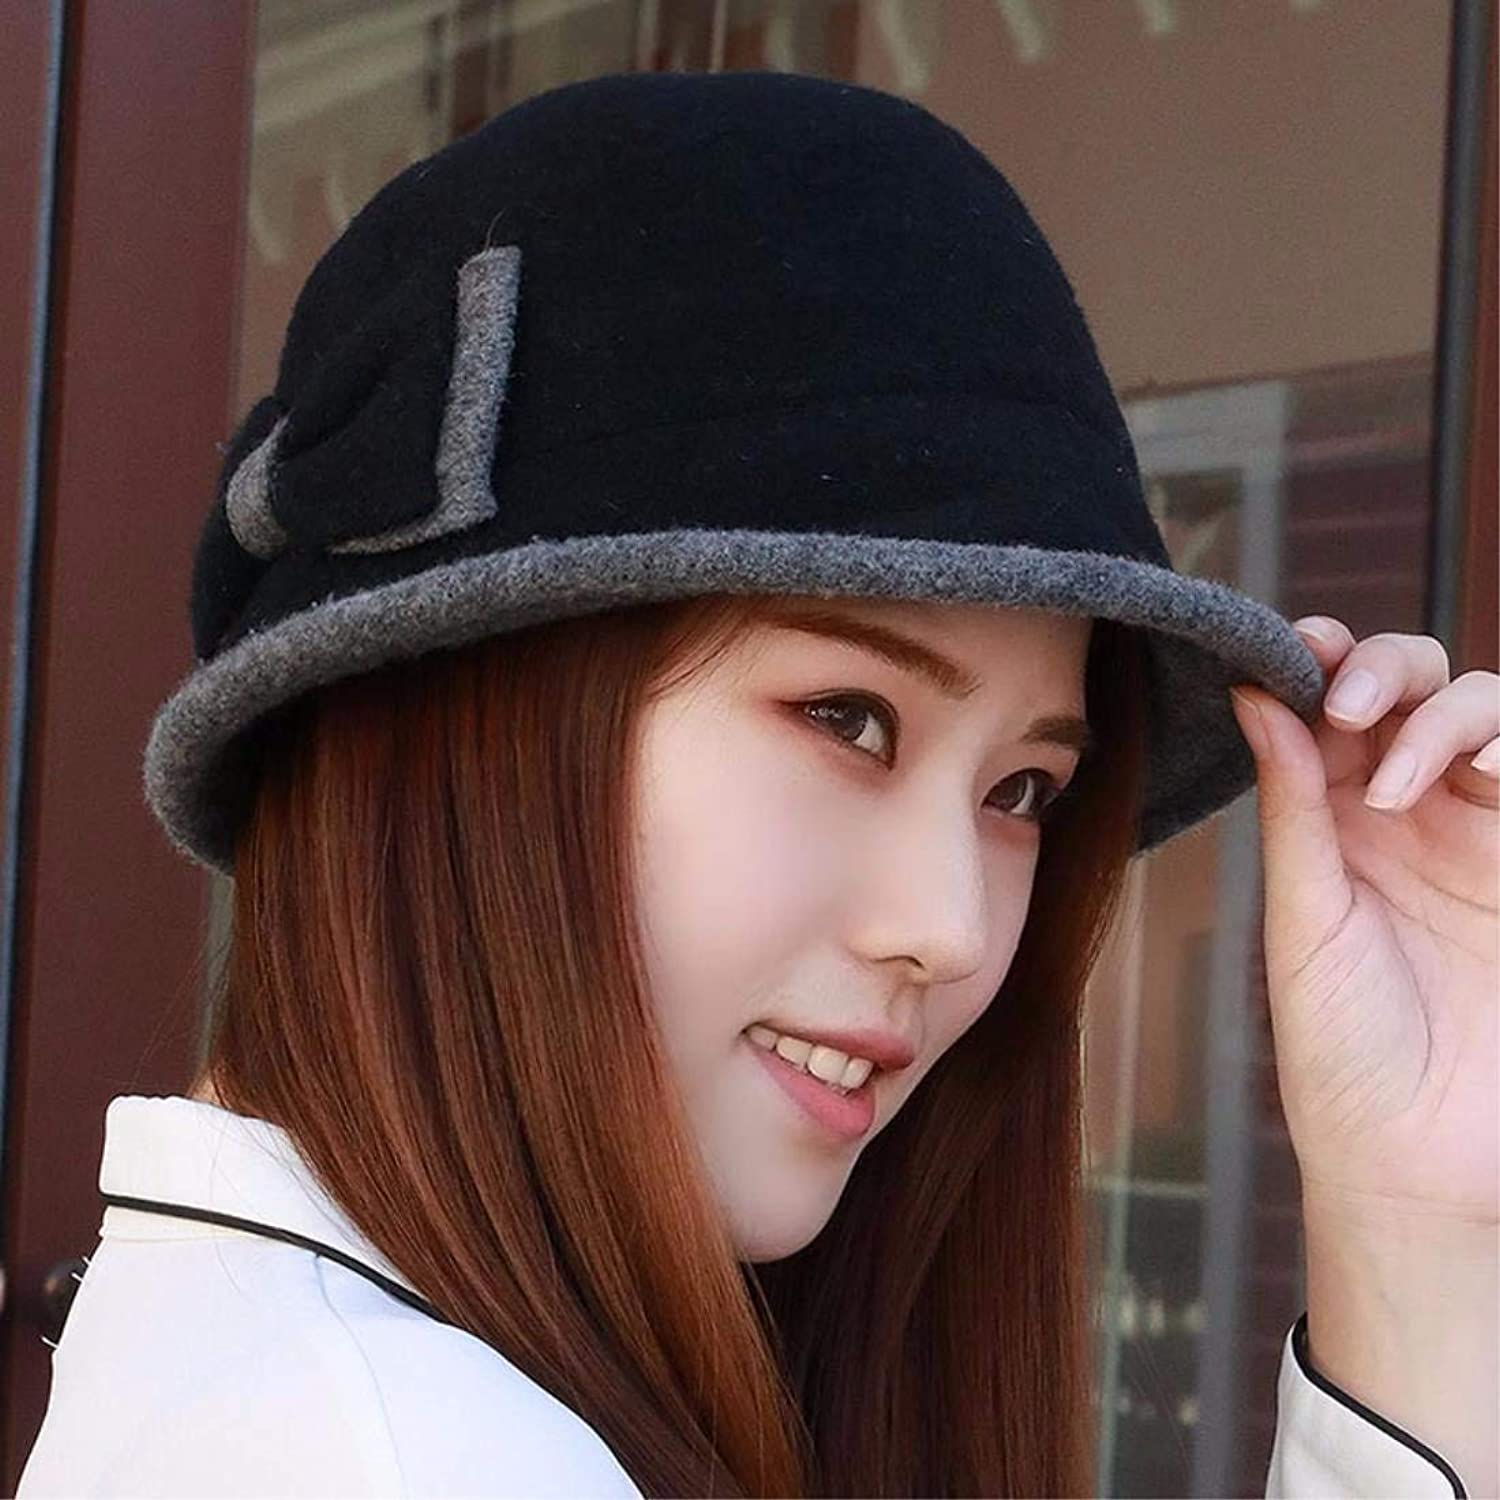 Chuangshengnet Fashion hat cap, fisherman hat, curled edge, small hat, winter hat,